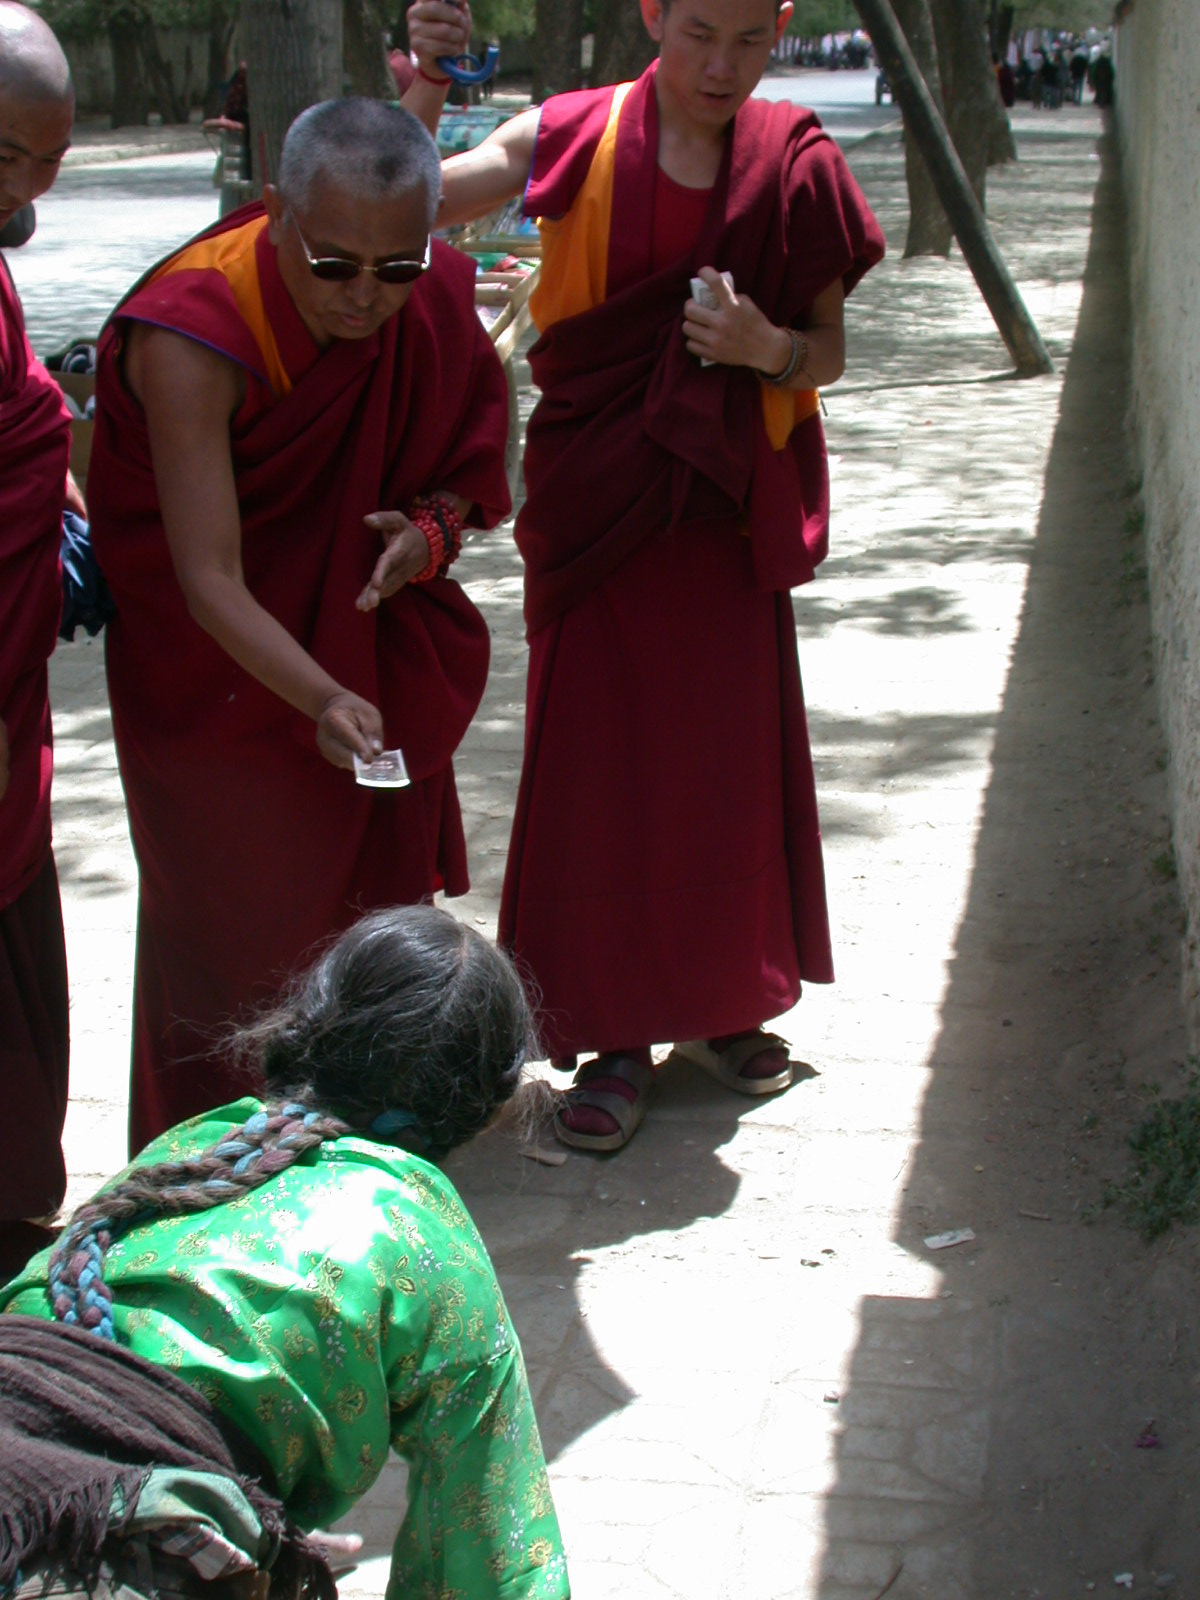 Offerings being made to someone prostrating in Tibet